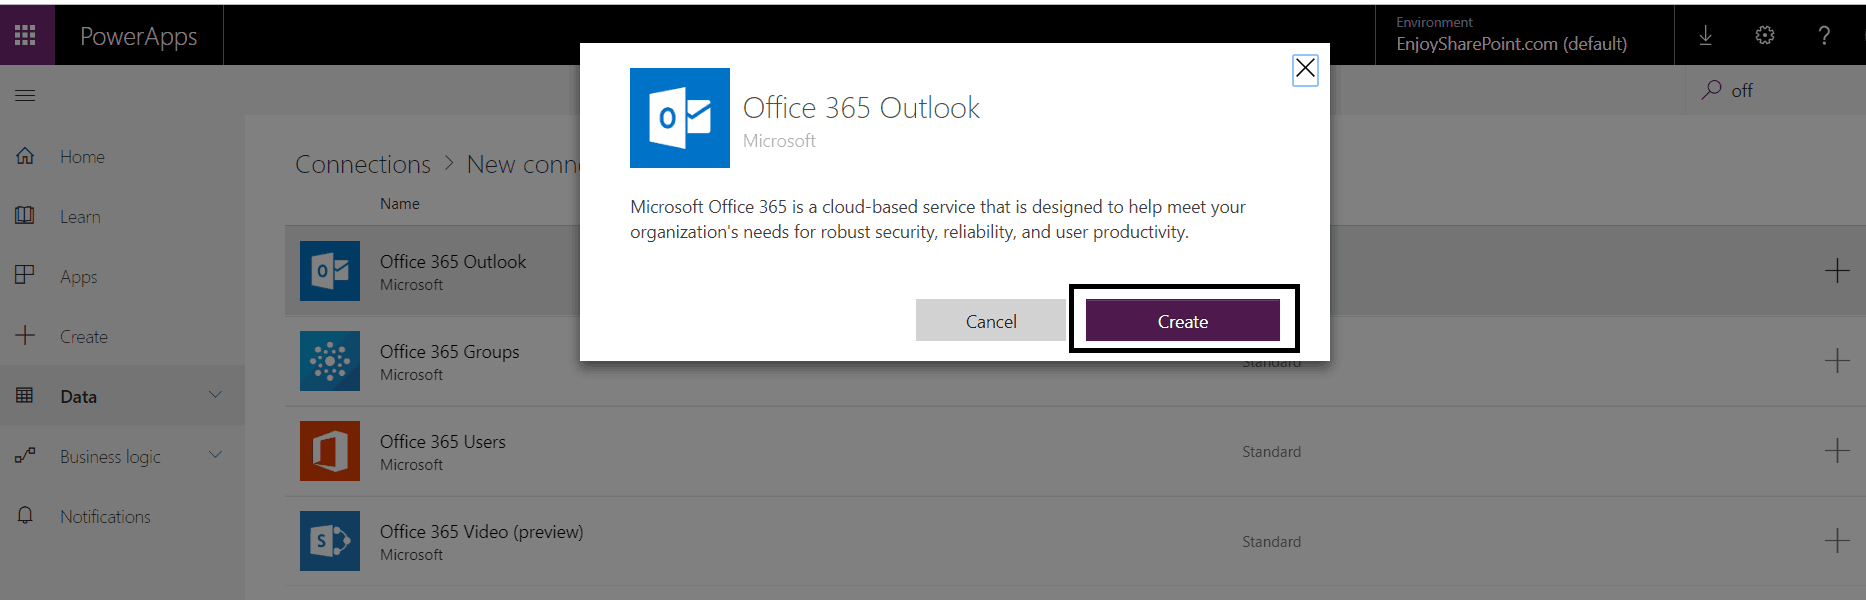 PowerApps Send an Email on Submit Button - SharePointSky